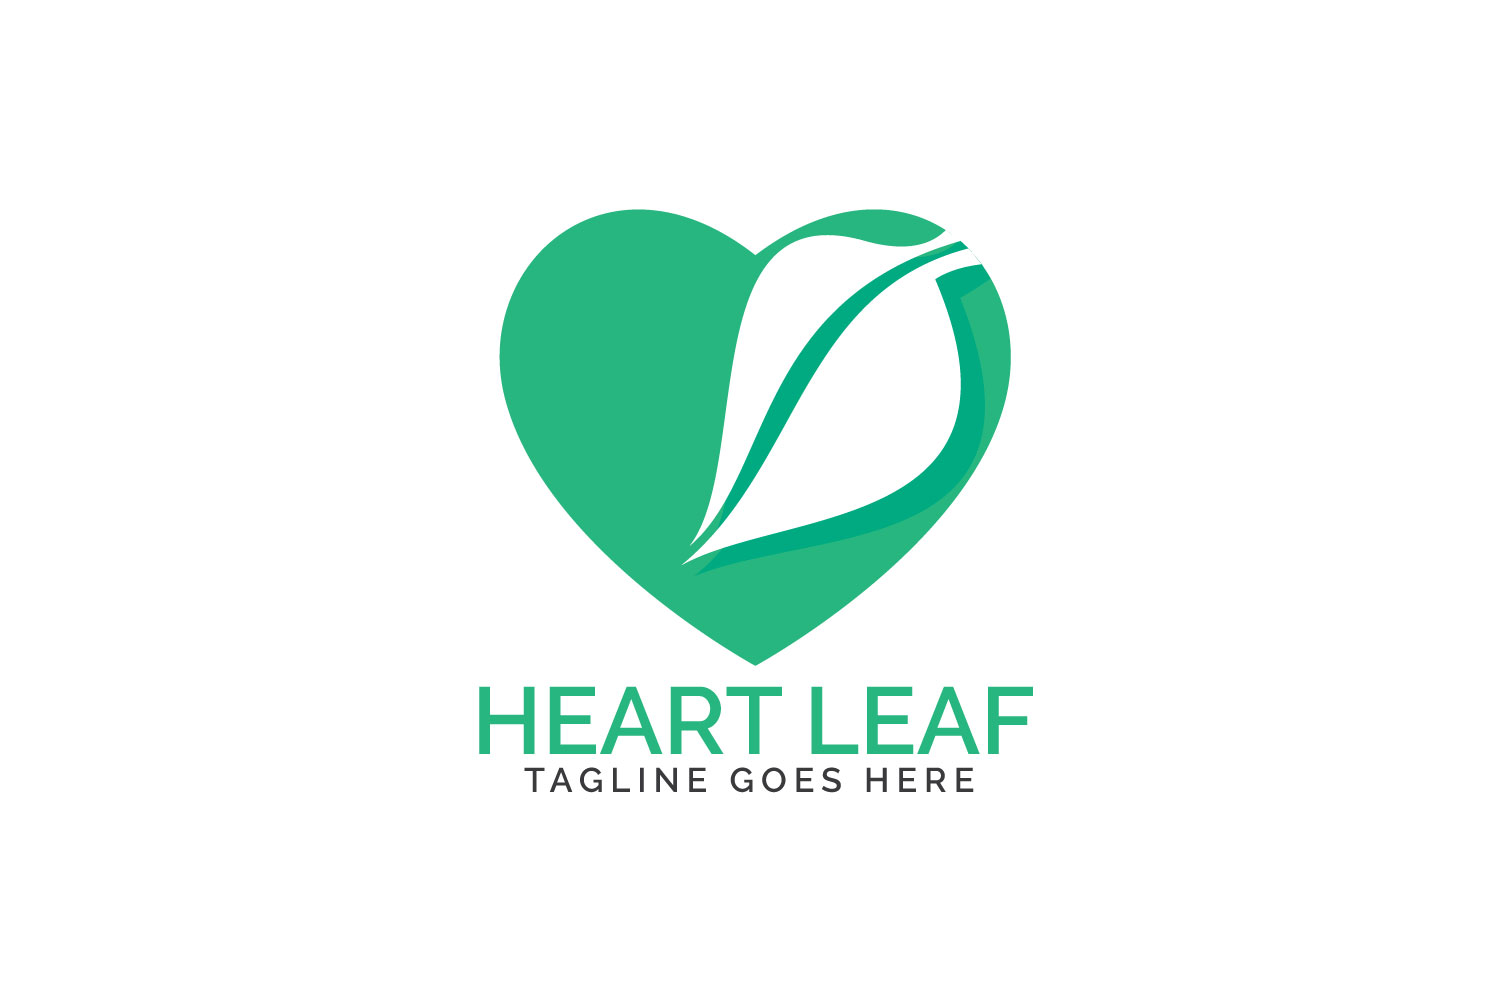 Heart leaf logo design. example image 1